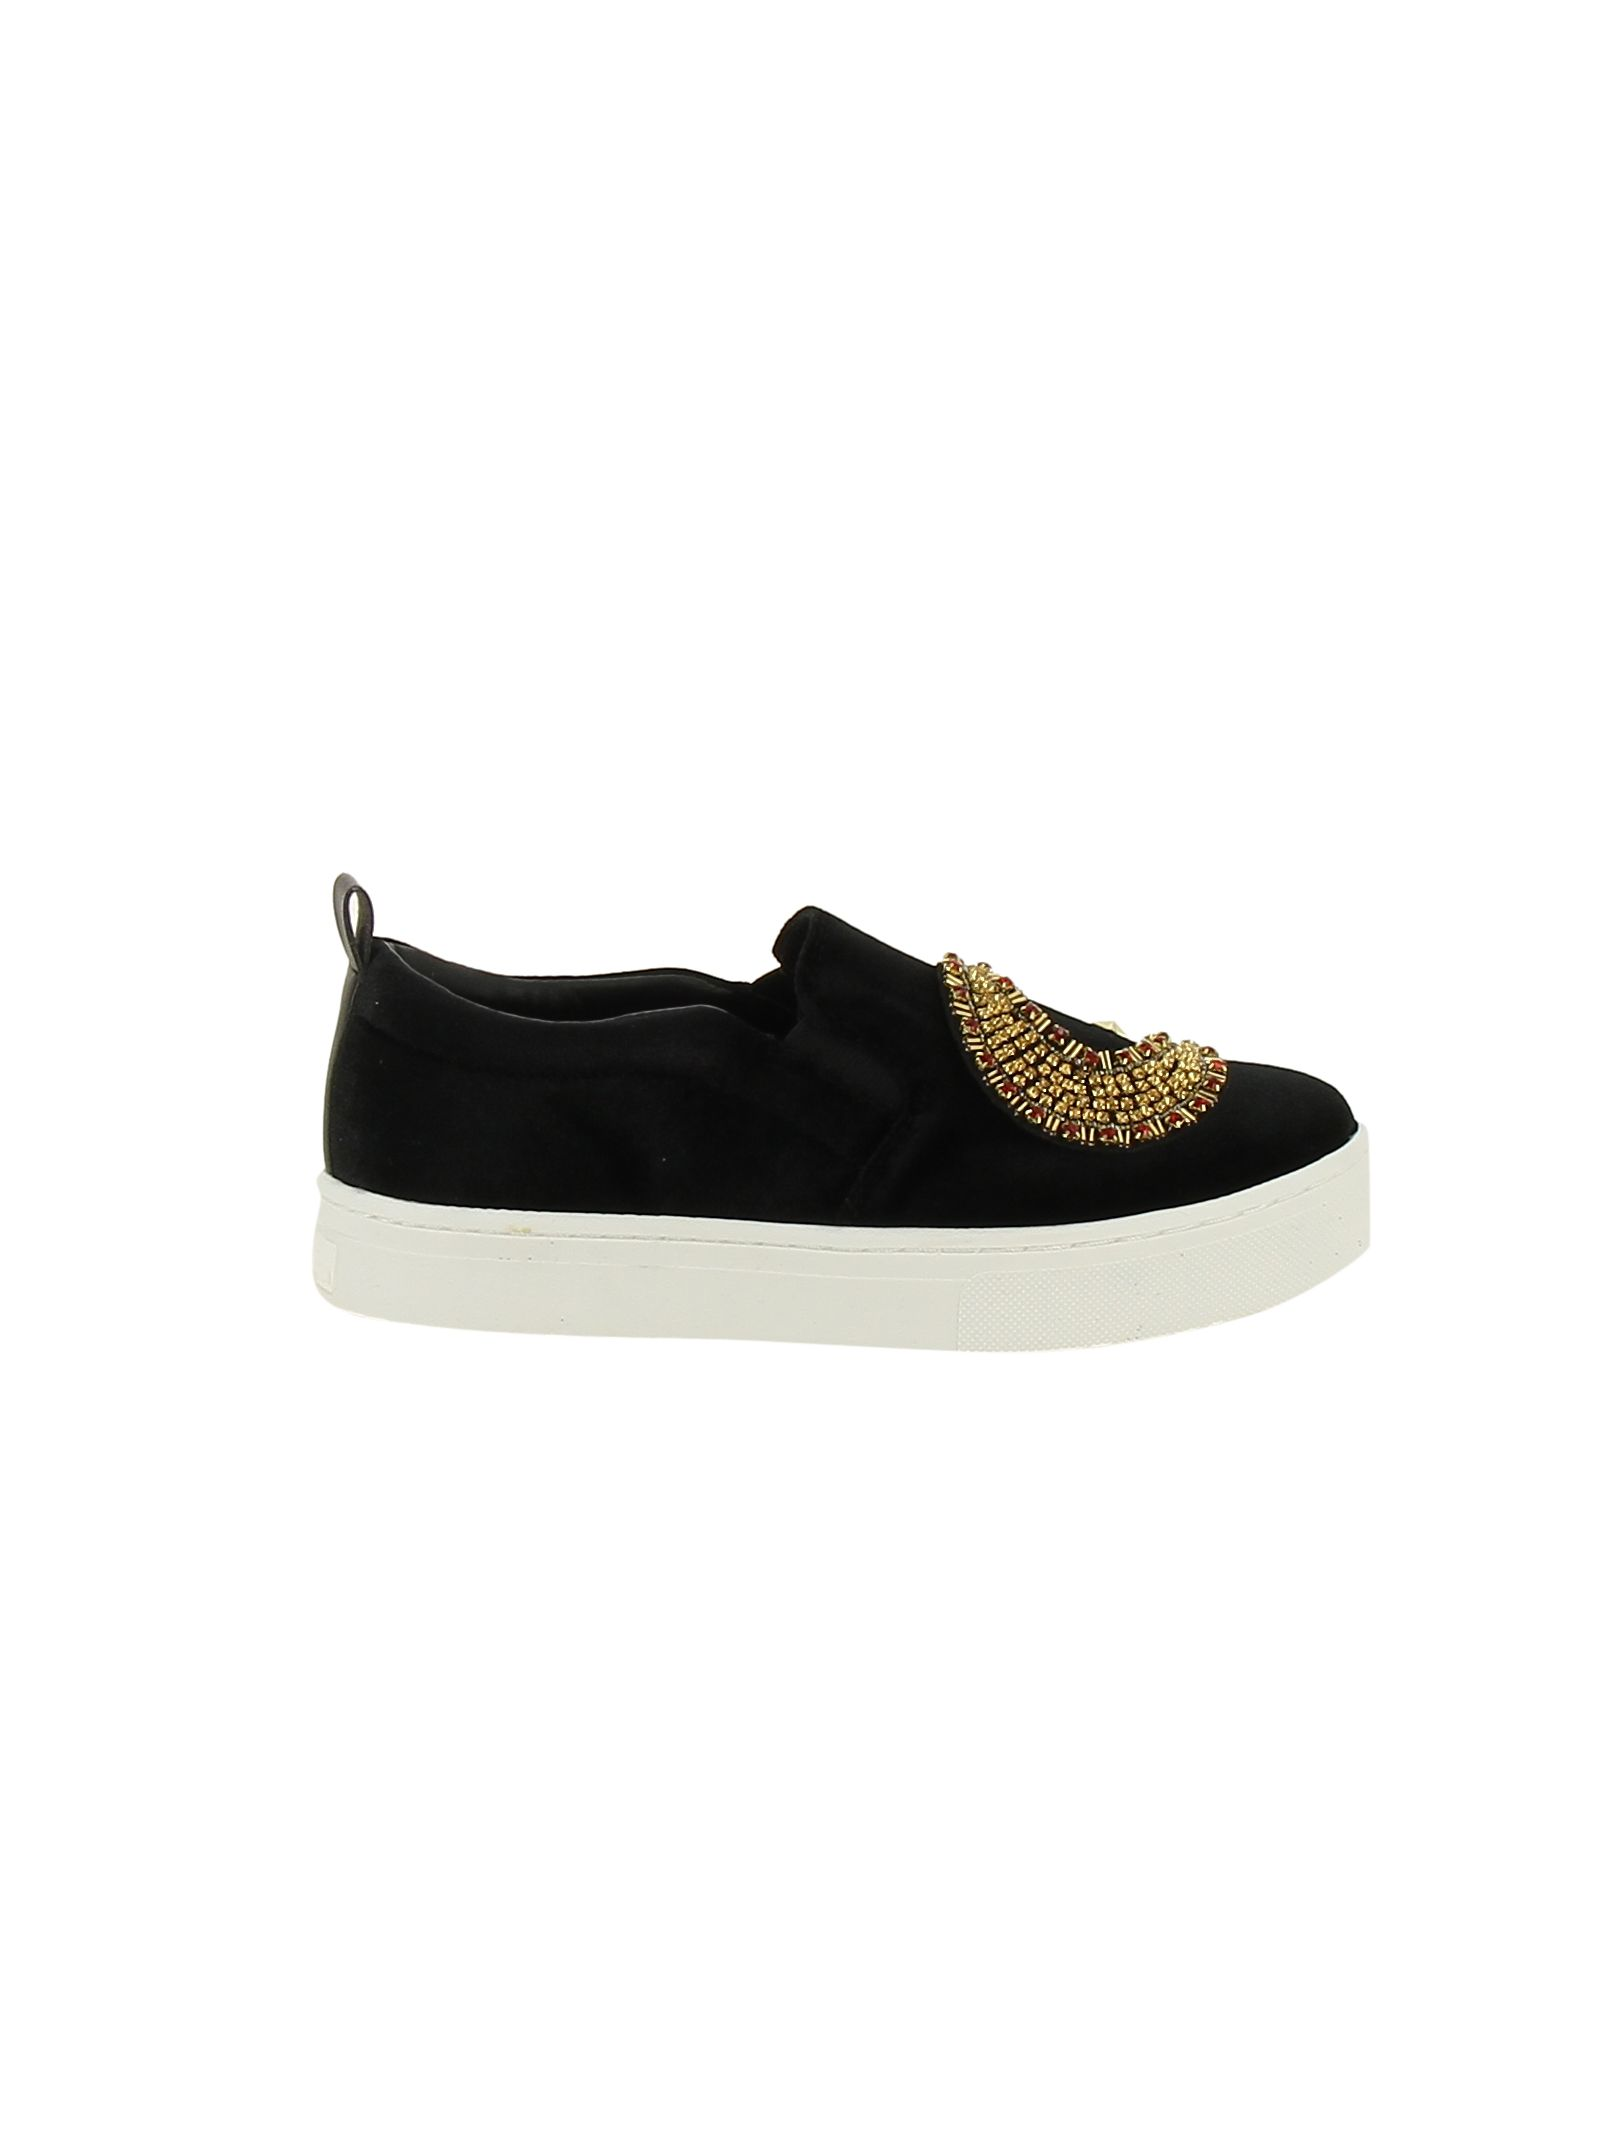 Sam Edelman Embellished Slip On Sneakers